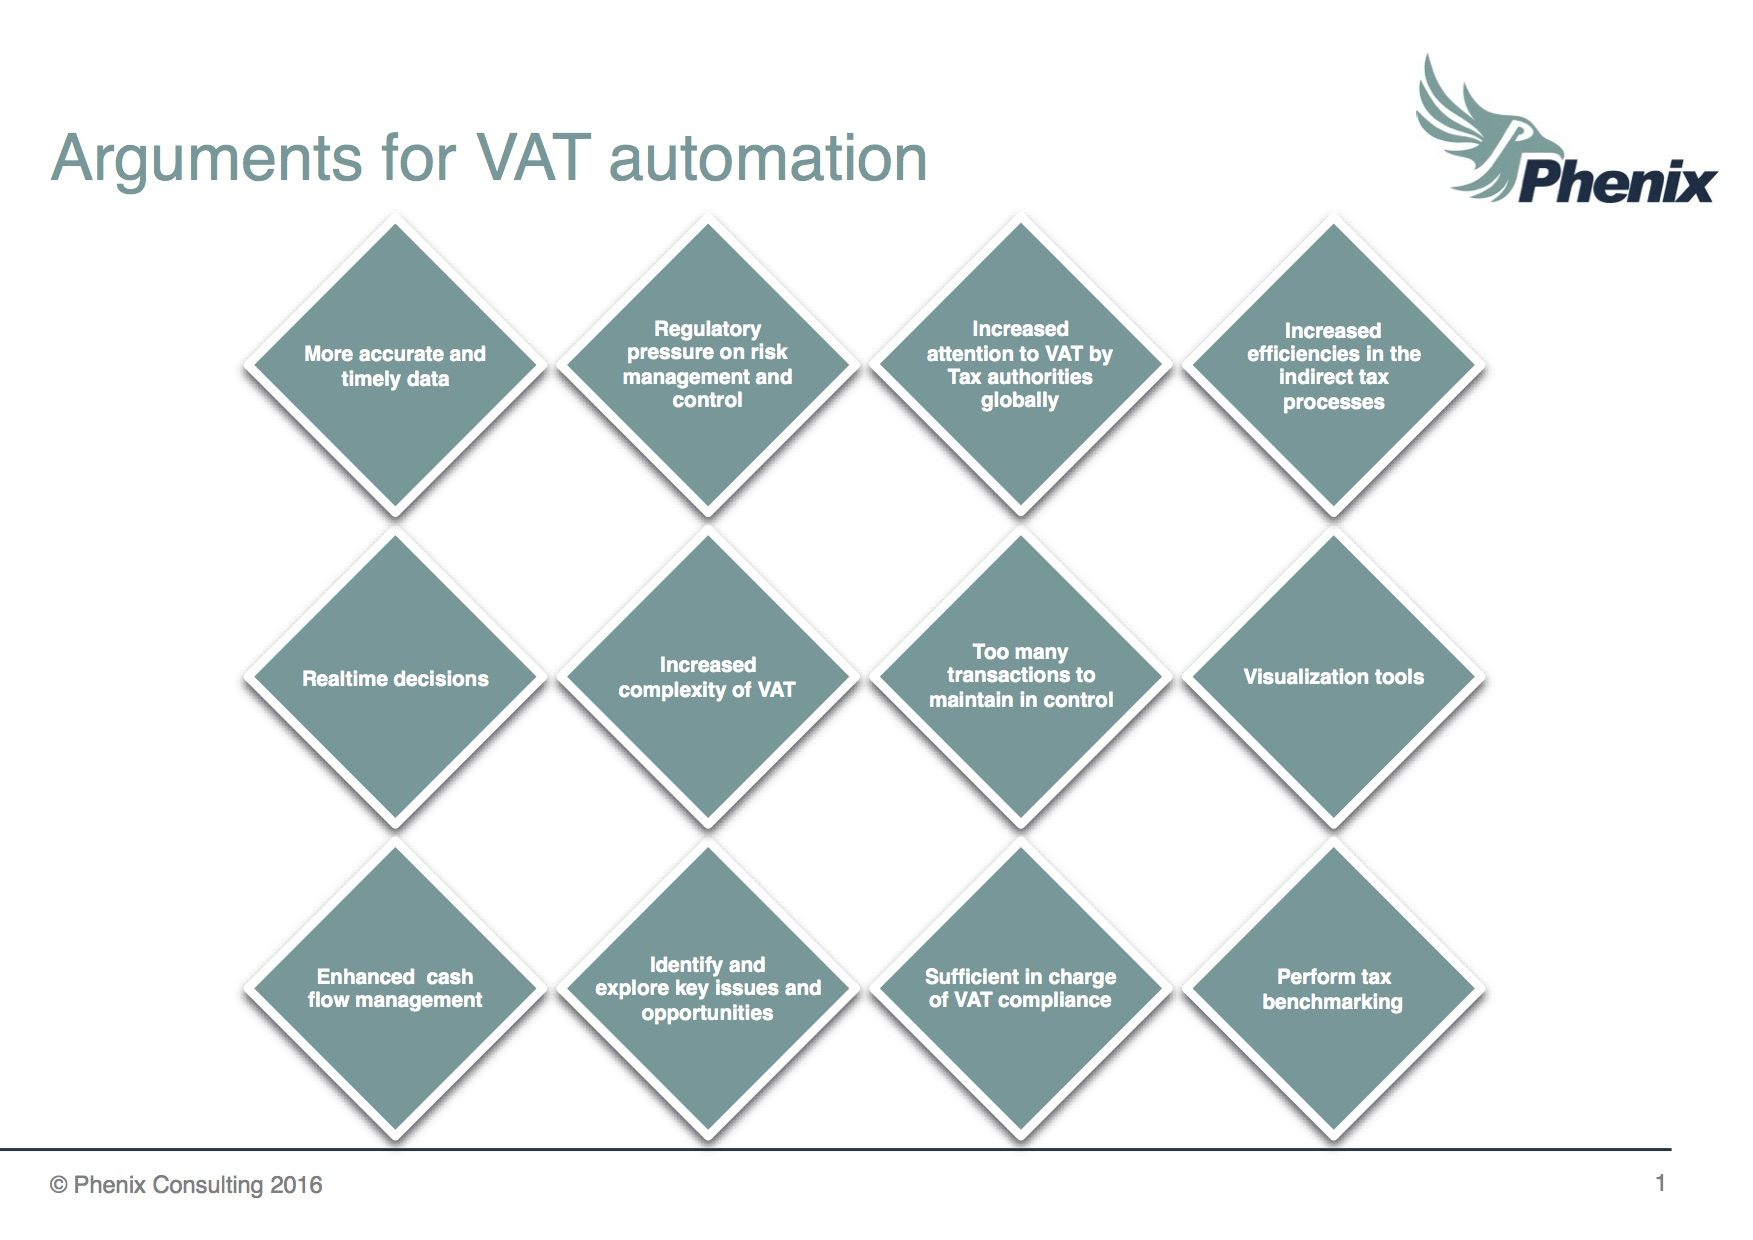 Arguments for VAT automation